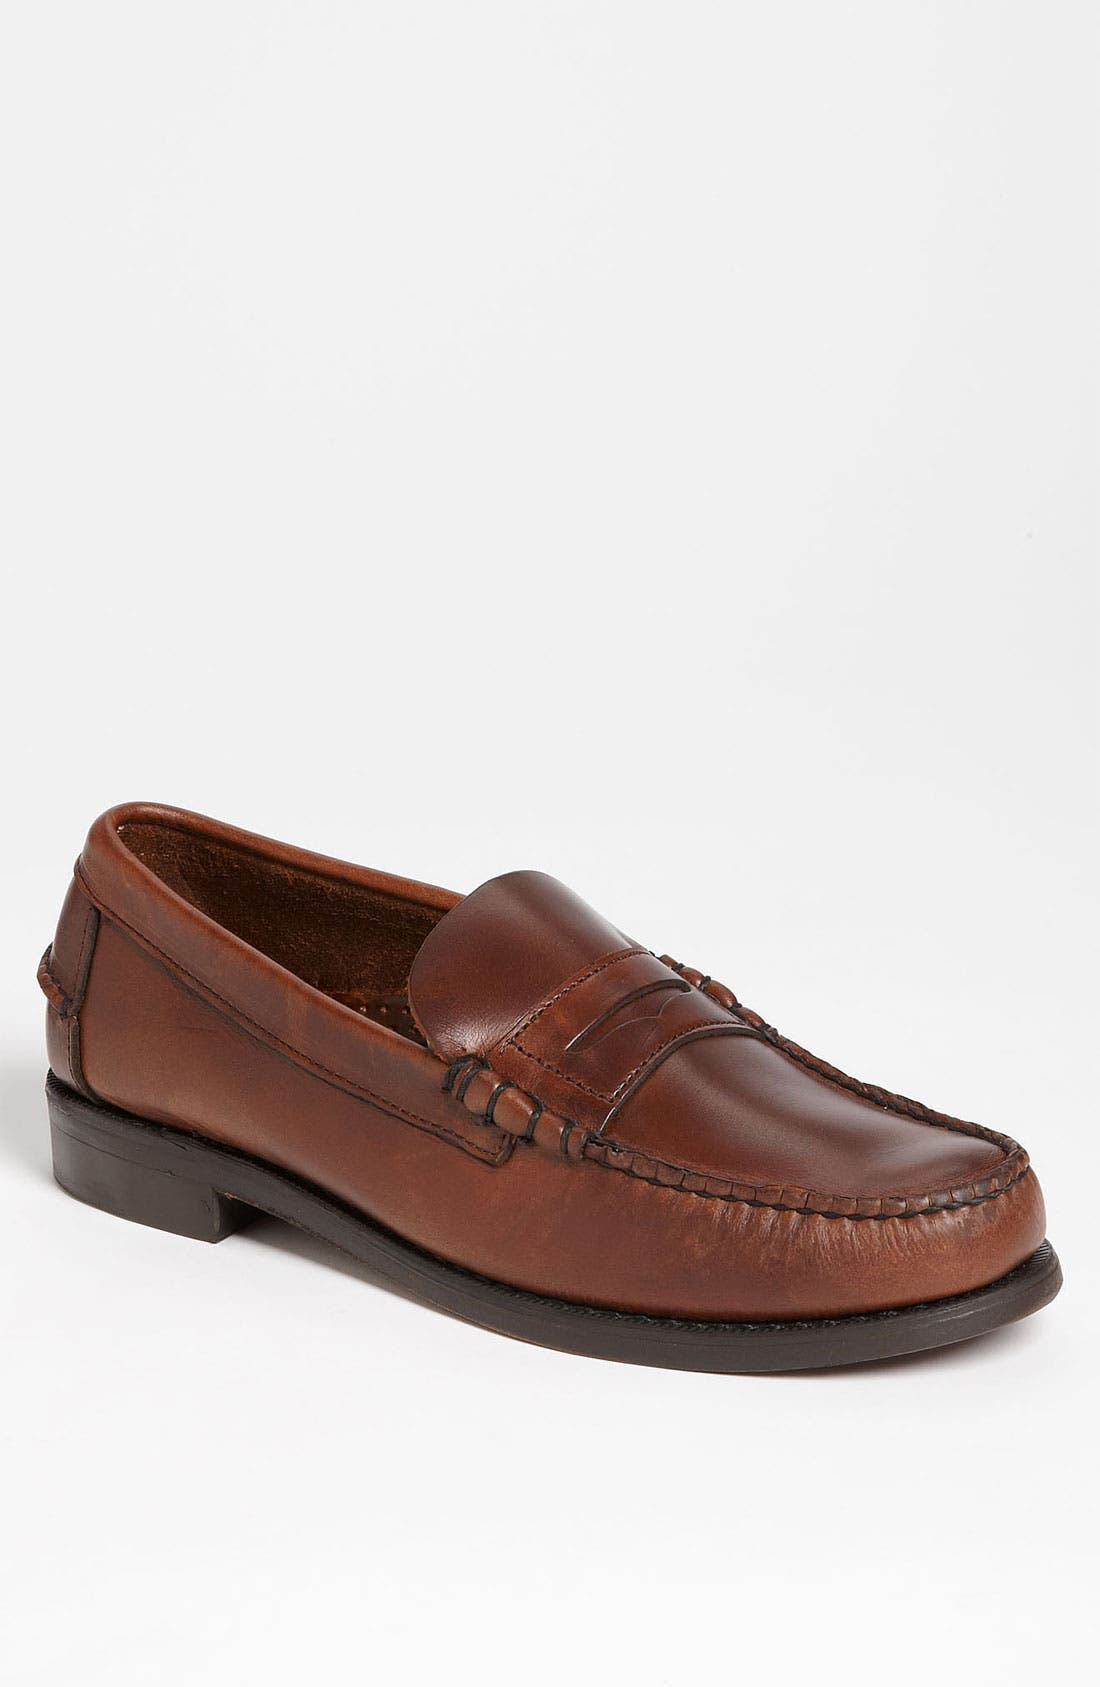 Alternate Image 1 Selected - Sebago 'Classic' Loafer